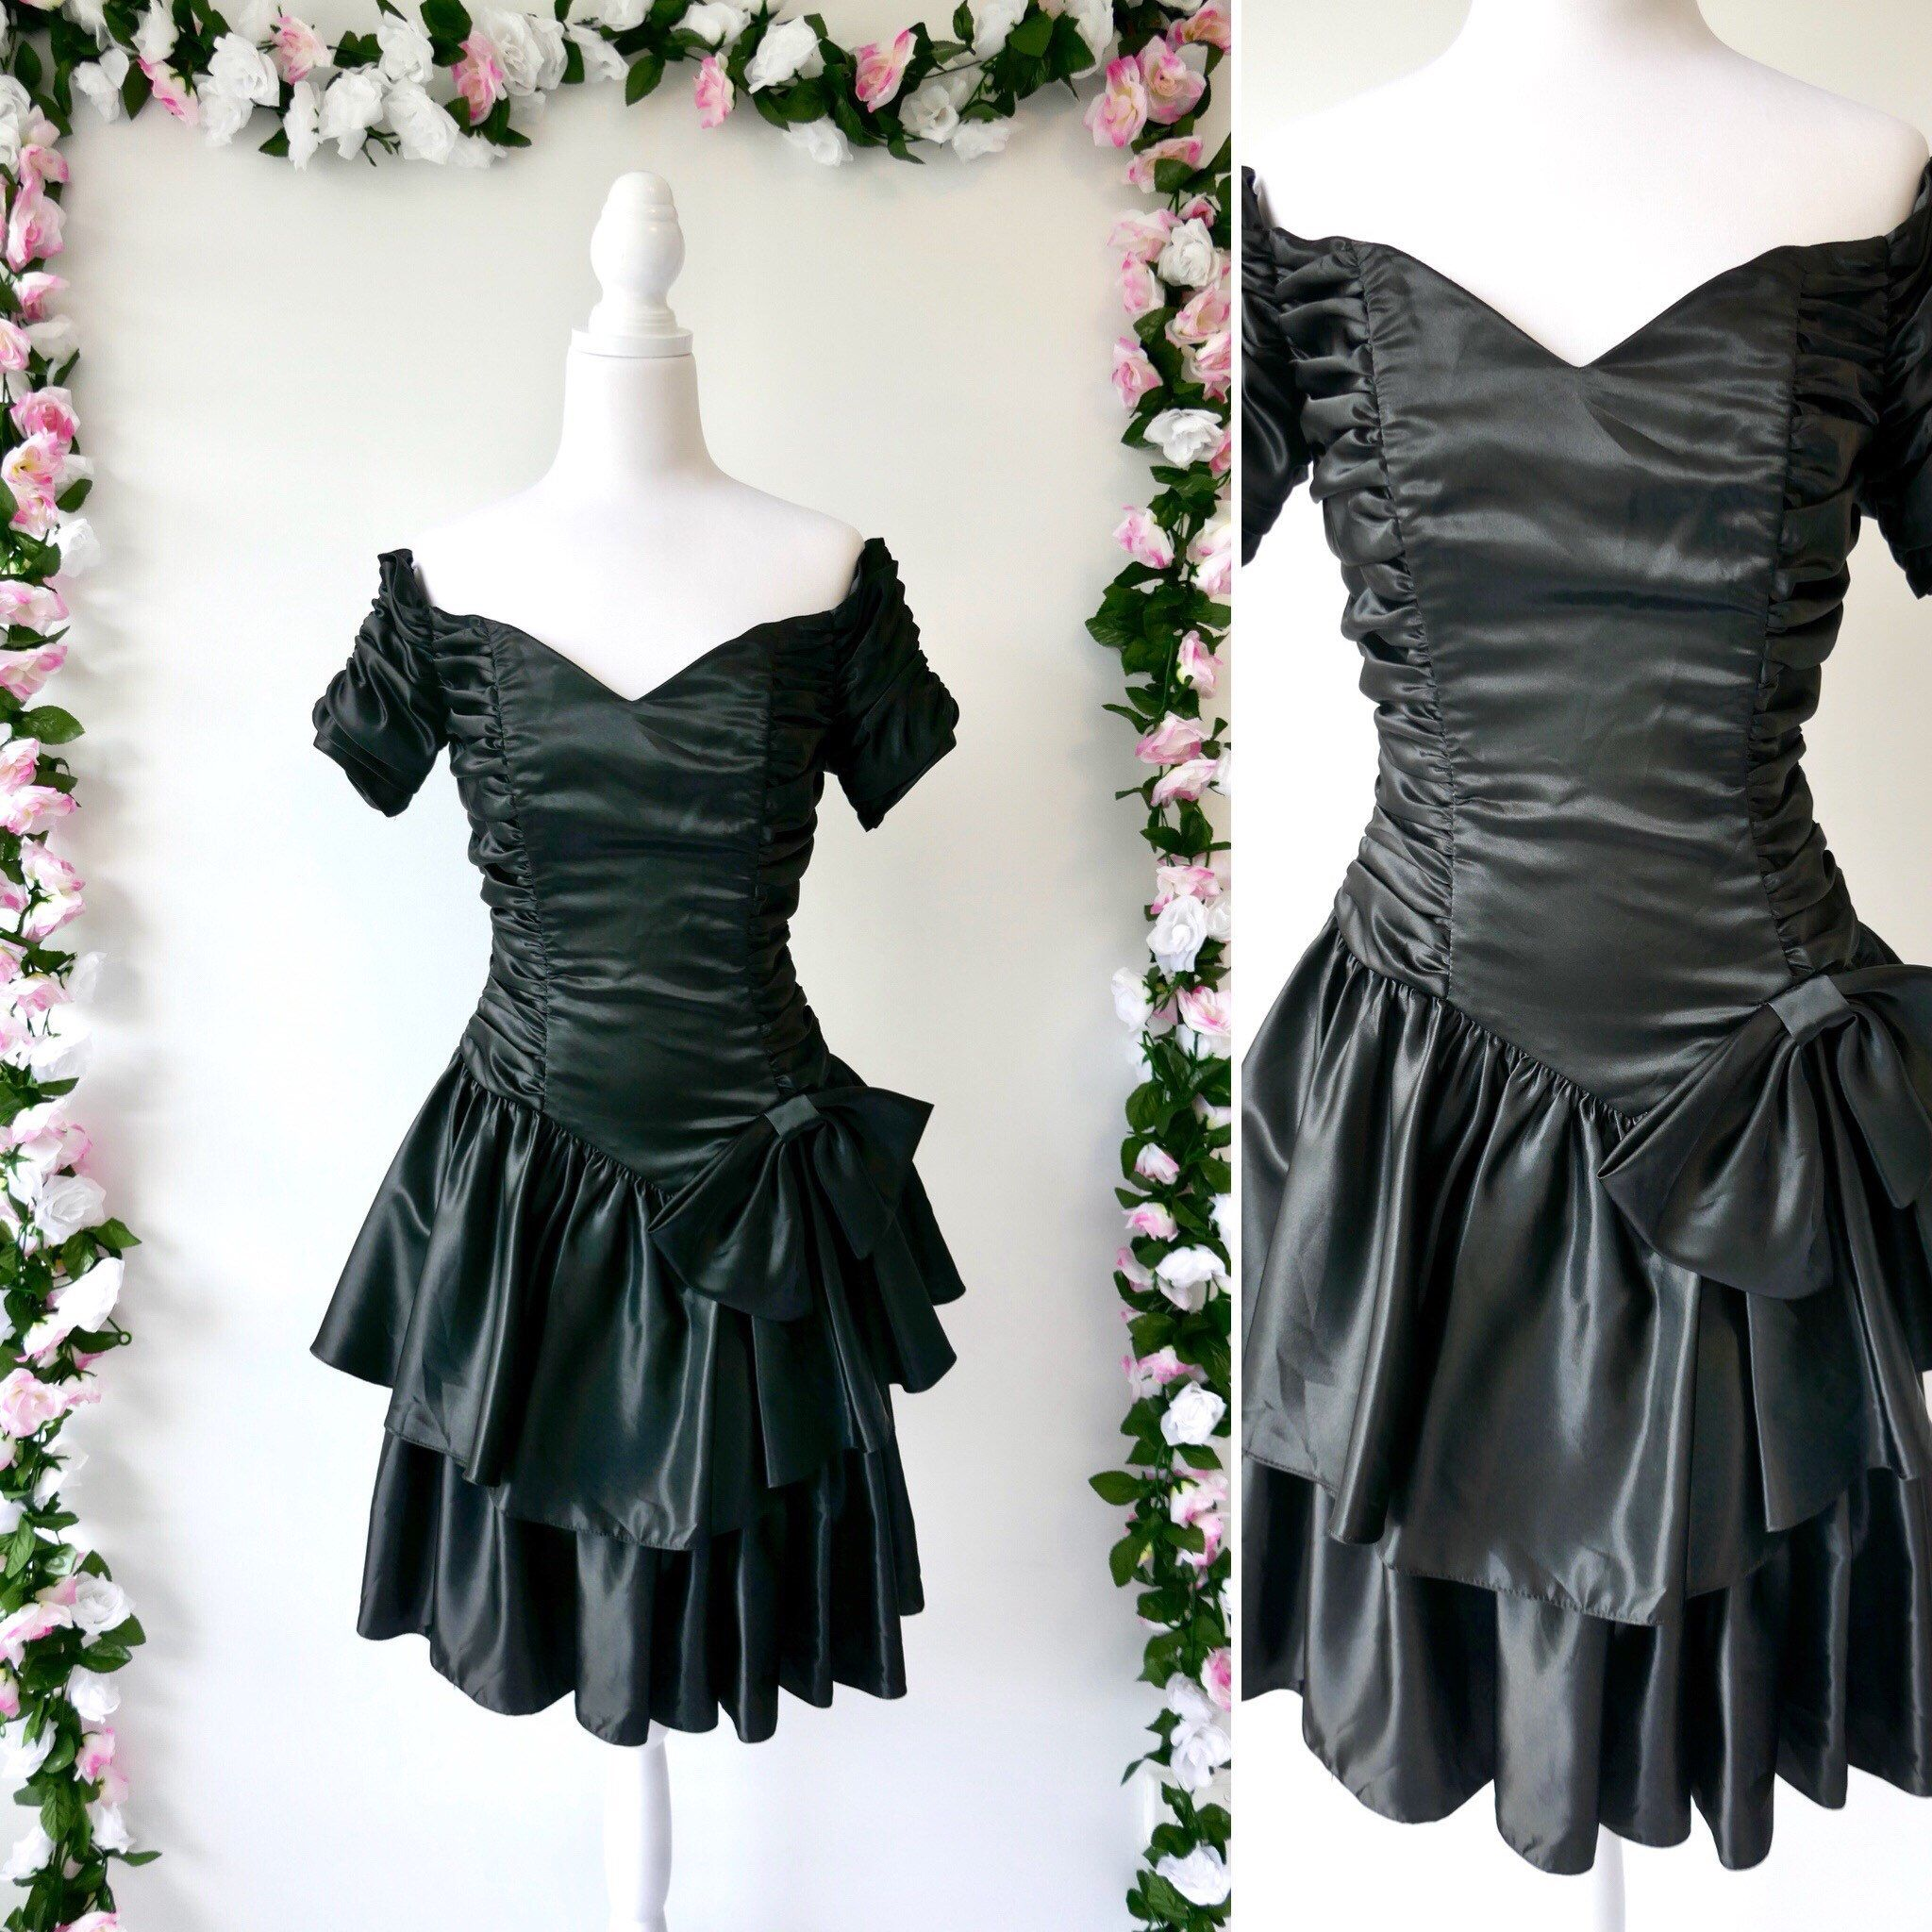 Excited to share this item from my  etsy shop  80s Prom Dress   1980 s  Black Formal Dress   Vintage Party Dress   Taffeta With Big Bow   Cocktail  Dress ... 37fe4ca14